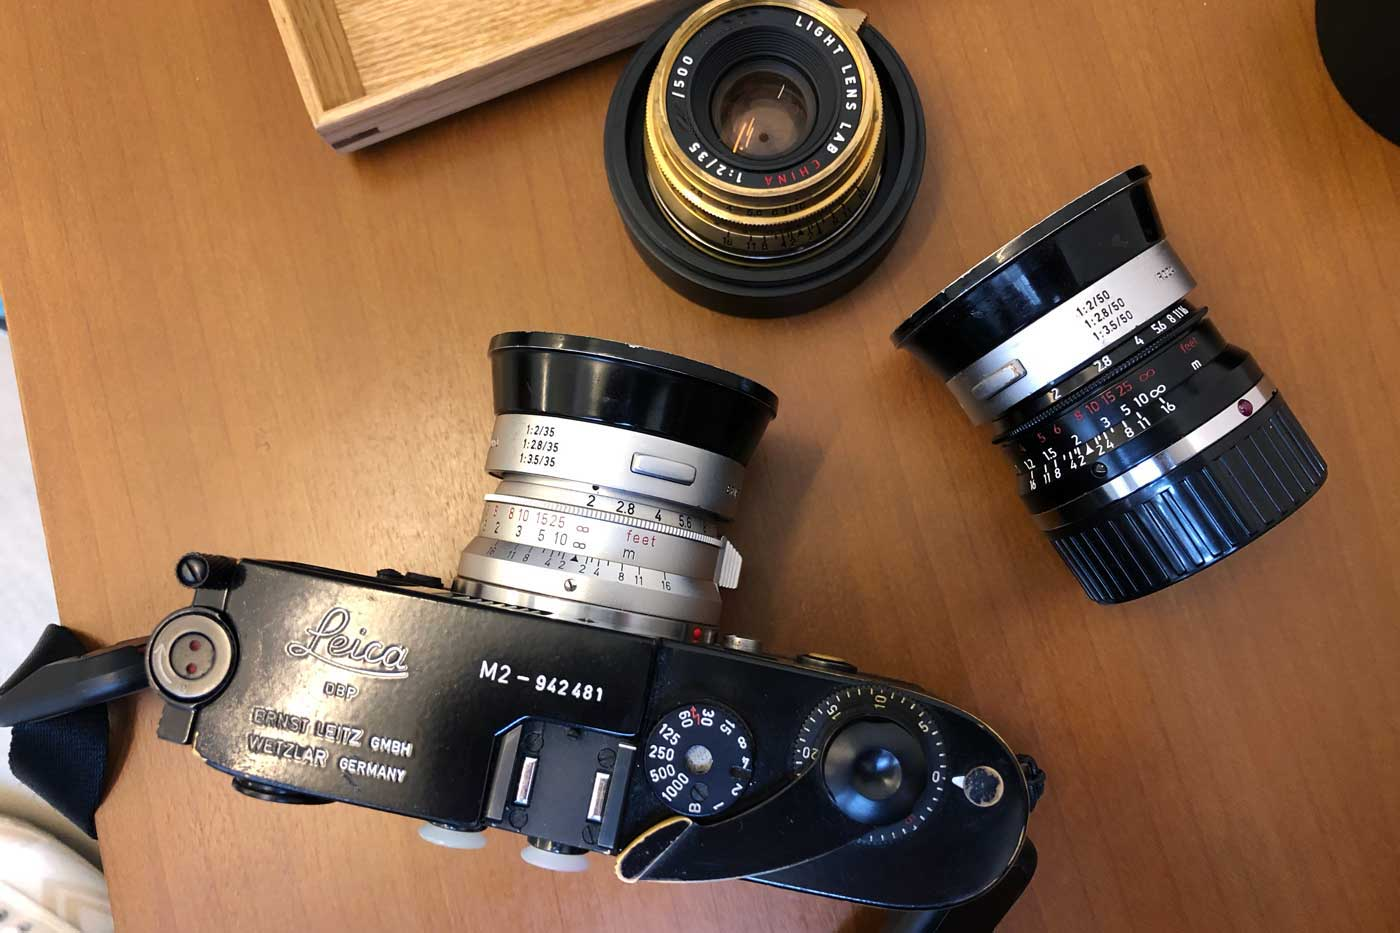 light-lens-lab-35mm-f2-35-2-LLL-Leica-Summicron-2.0-brass-black-paint-m2-brassed-hk-review-lens-lenses-original-8-elements-周八枚-coffee-versions